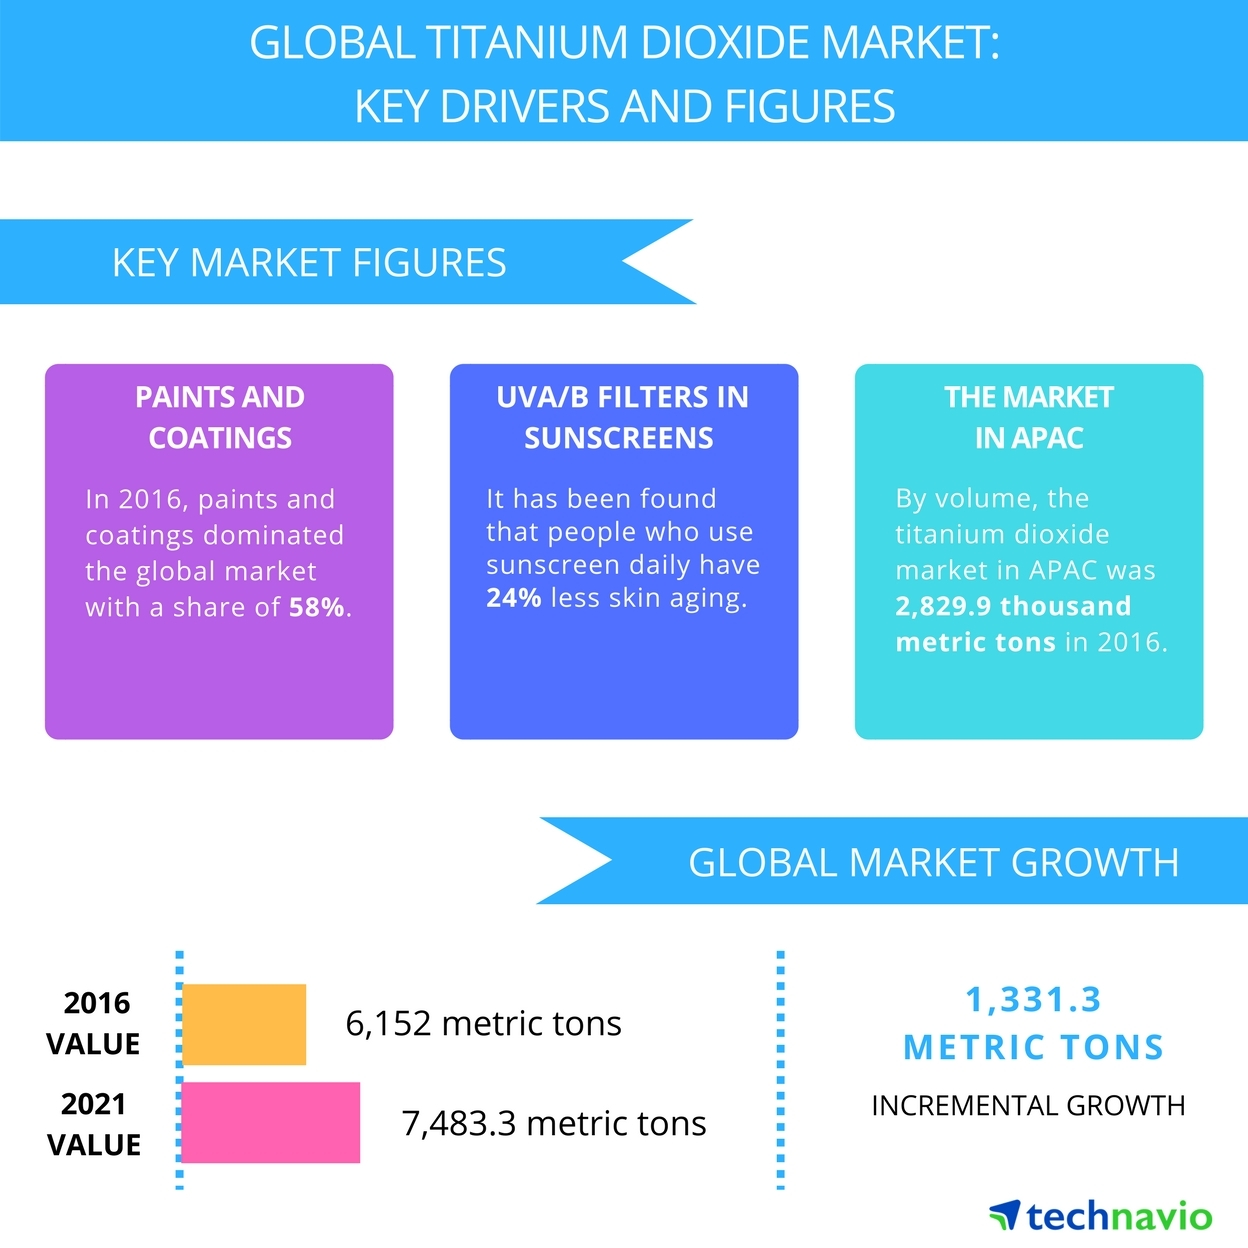 Top 5 Vendors in the Global Titanium Dioxide Market From